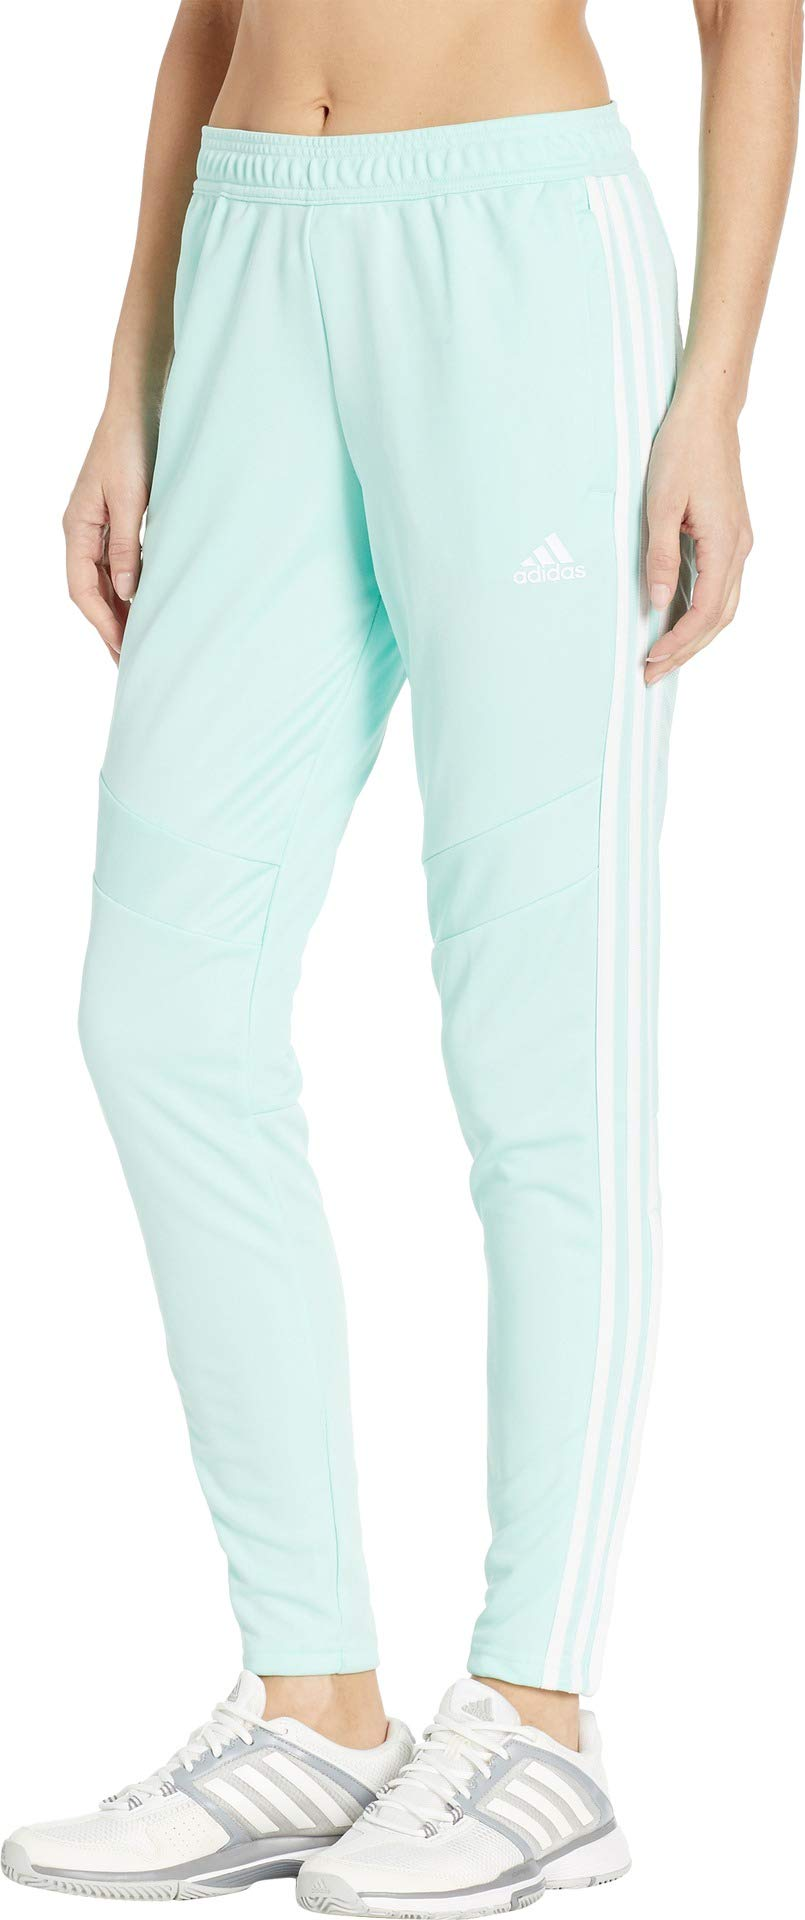 adidas Women's Tiro '19 Pants Clear Mint/White XX-Large 30 by adidas (Image #2)